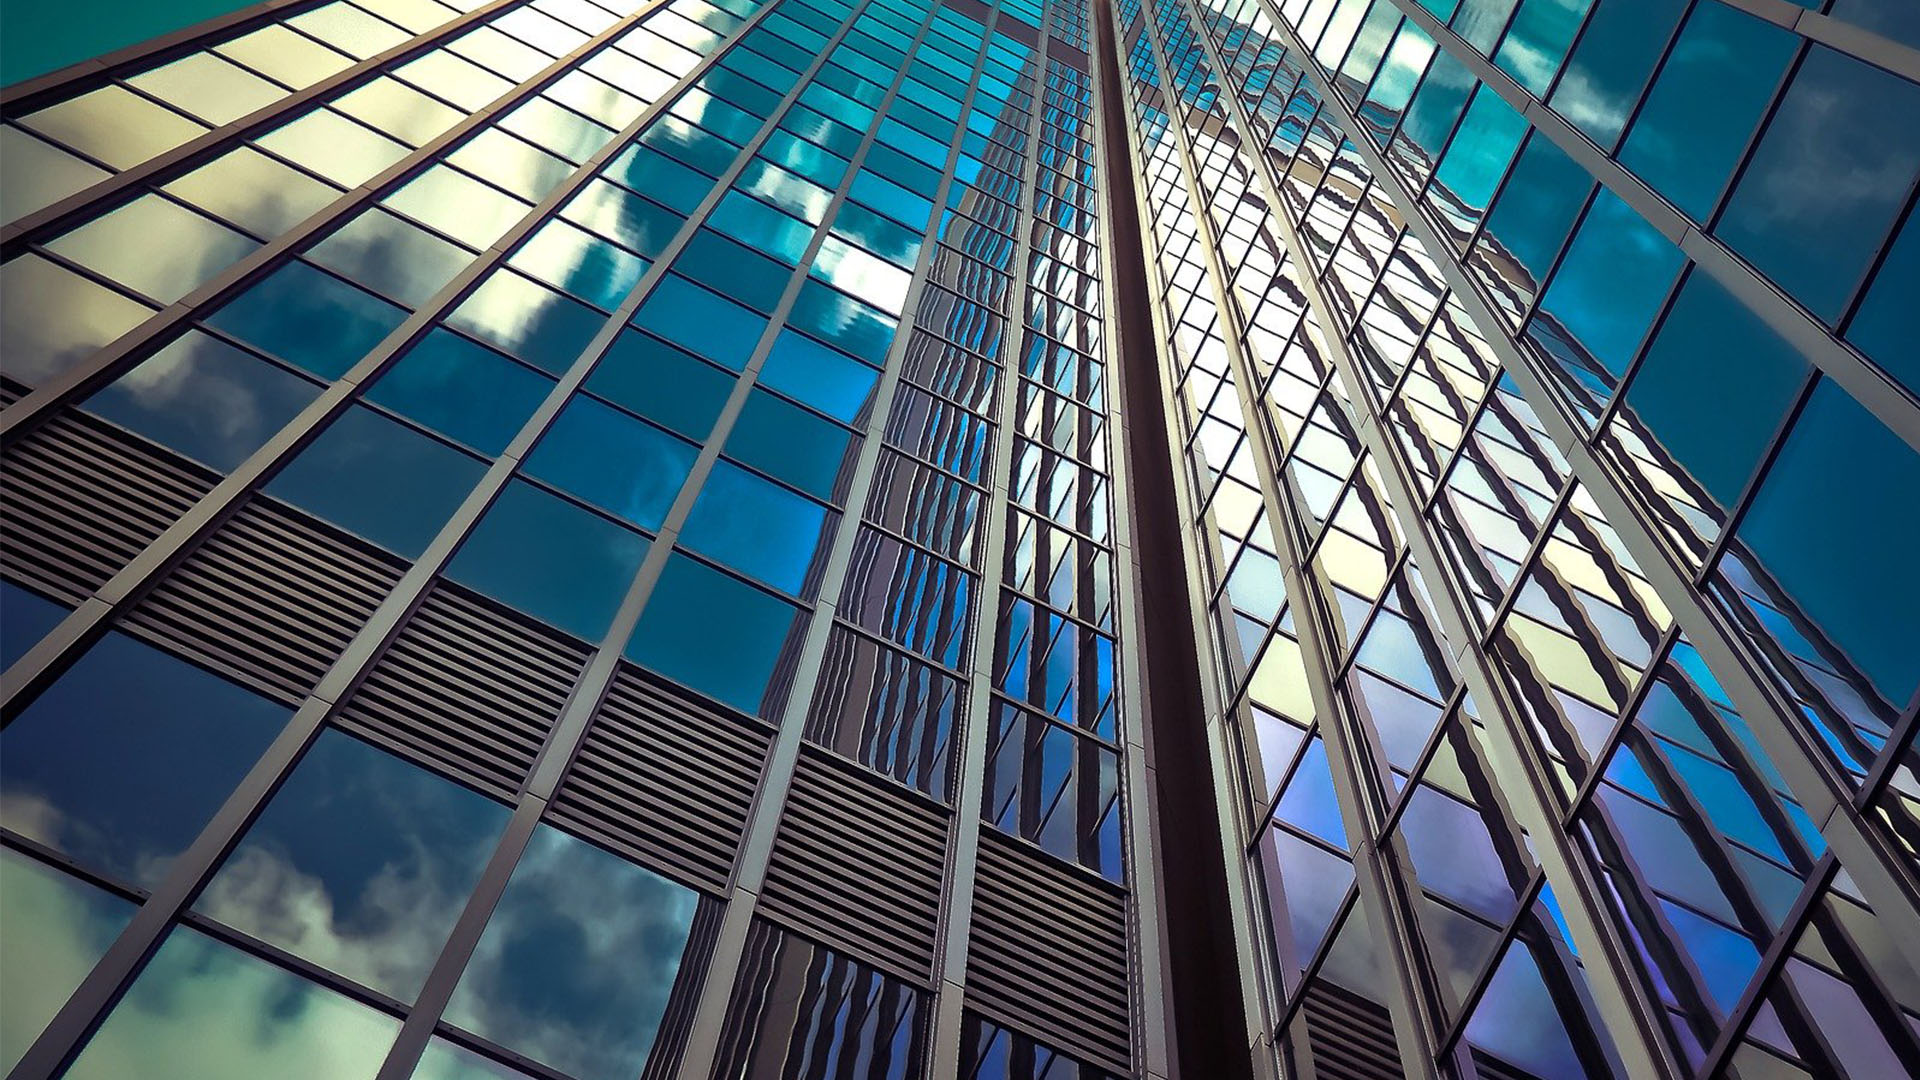 view of tall office building from the ground